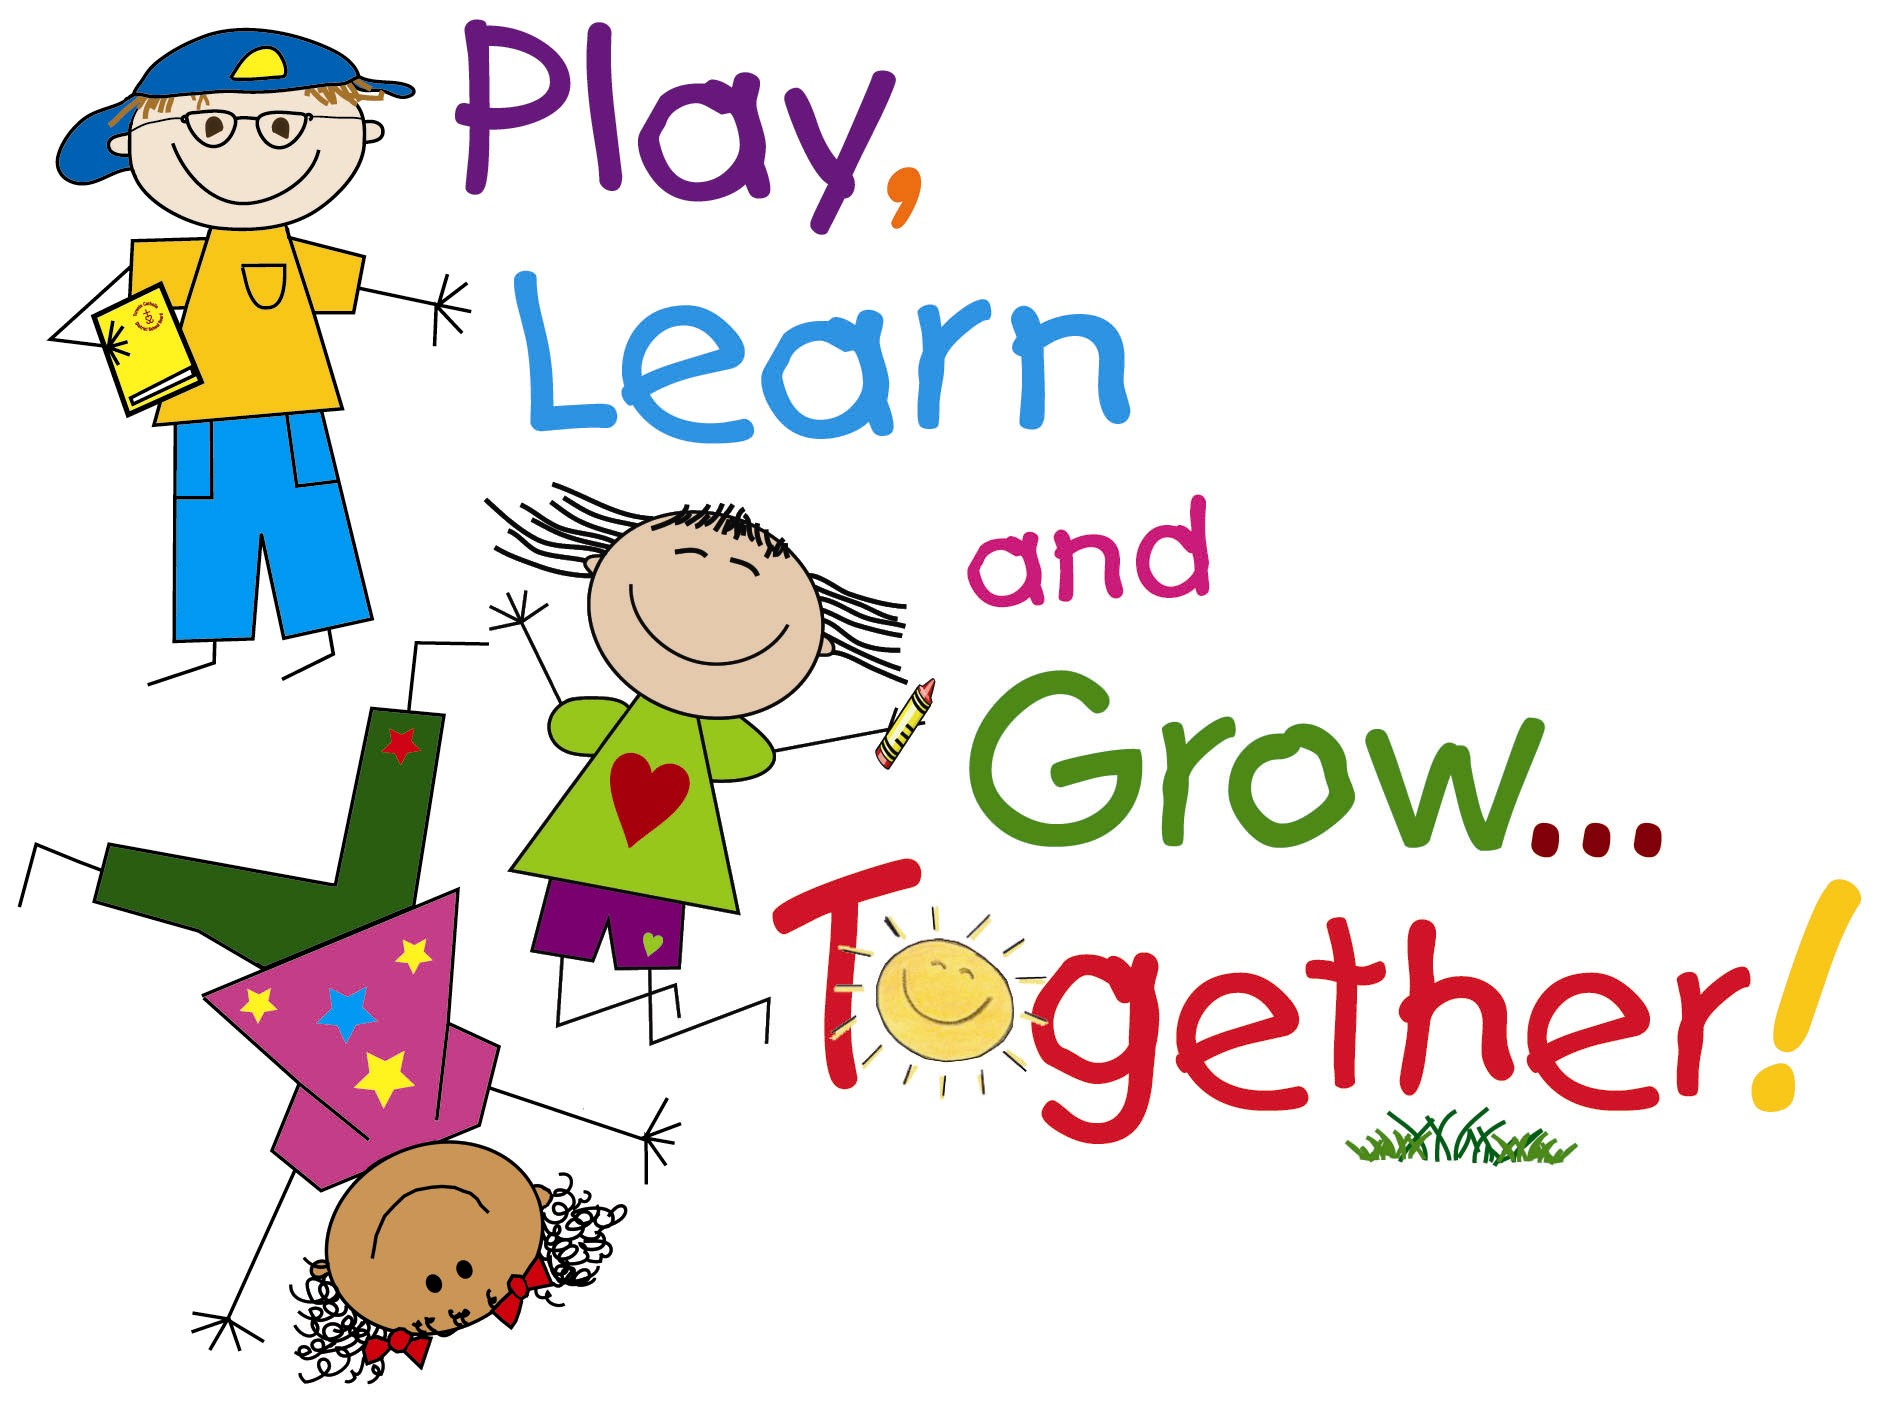 clipart of teaching - photo #33